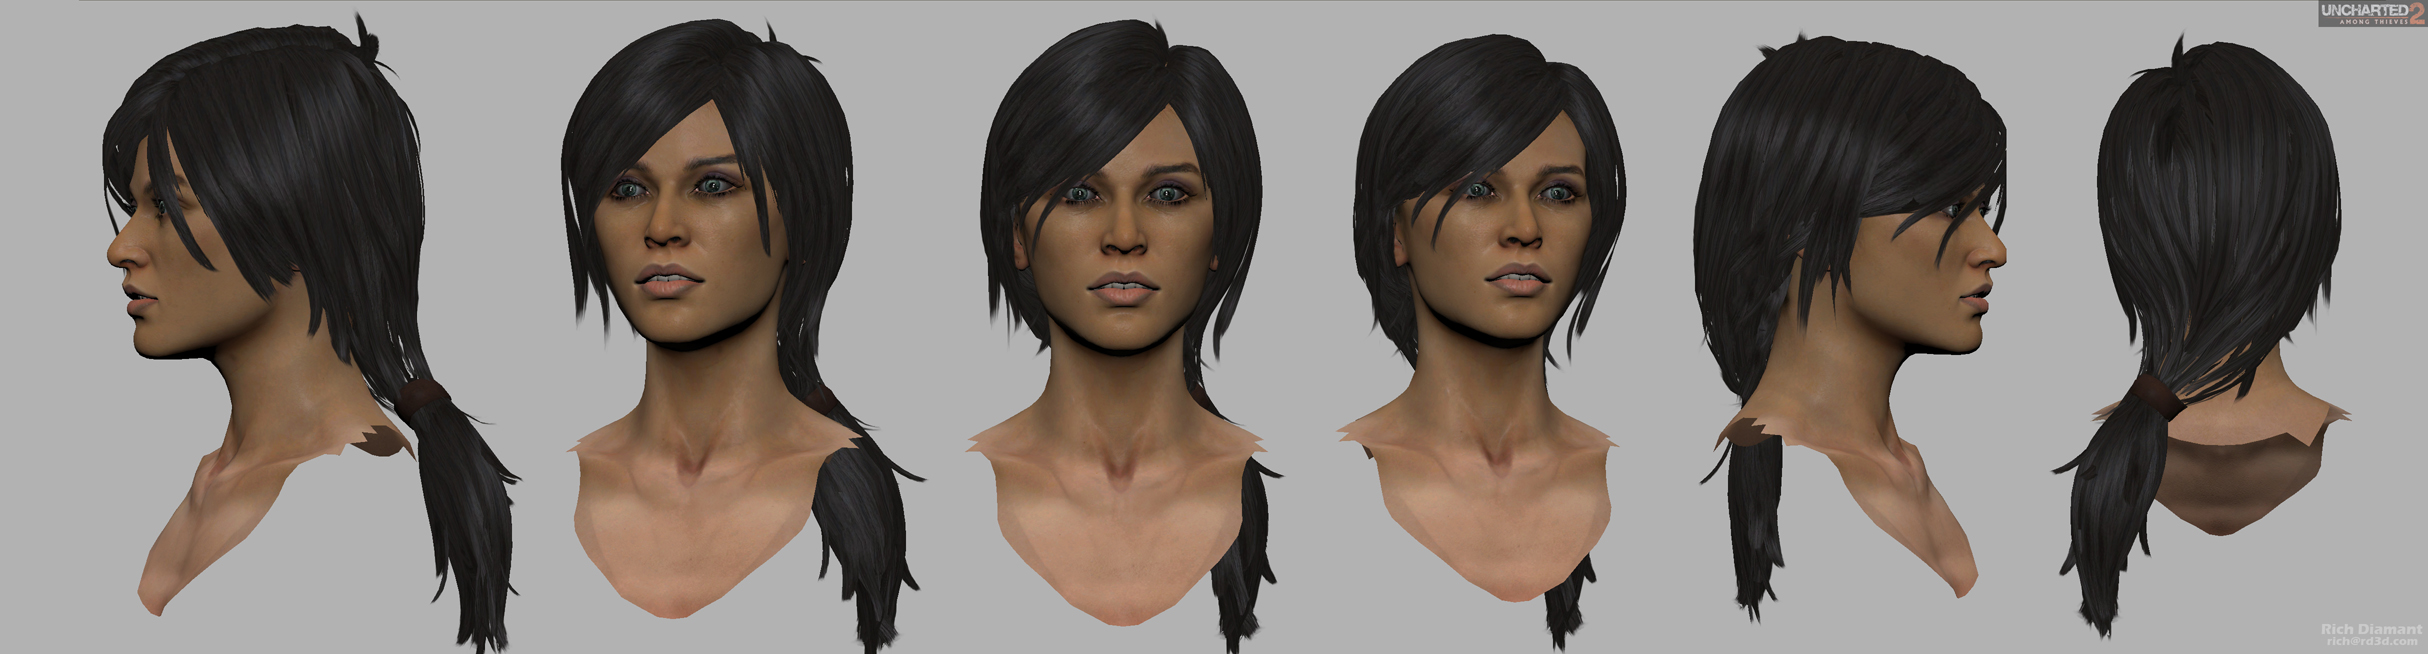 HairTechnique Polycount